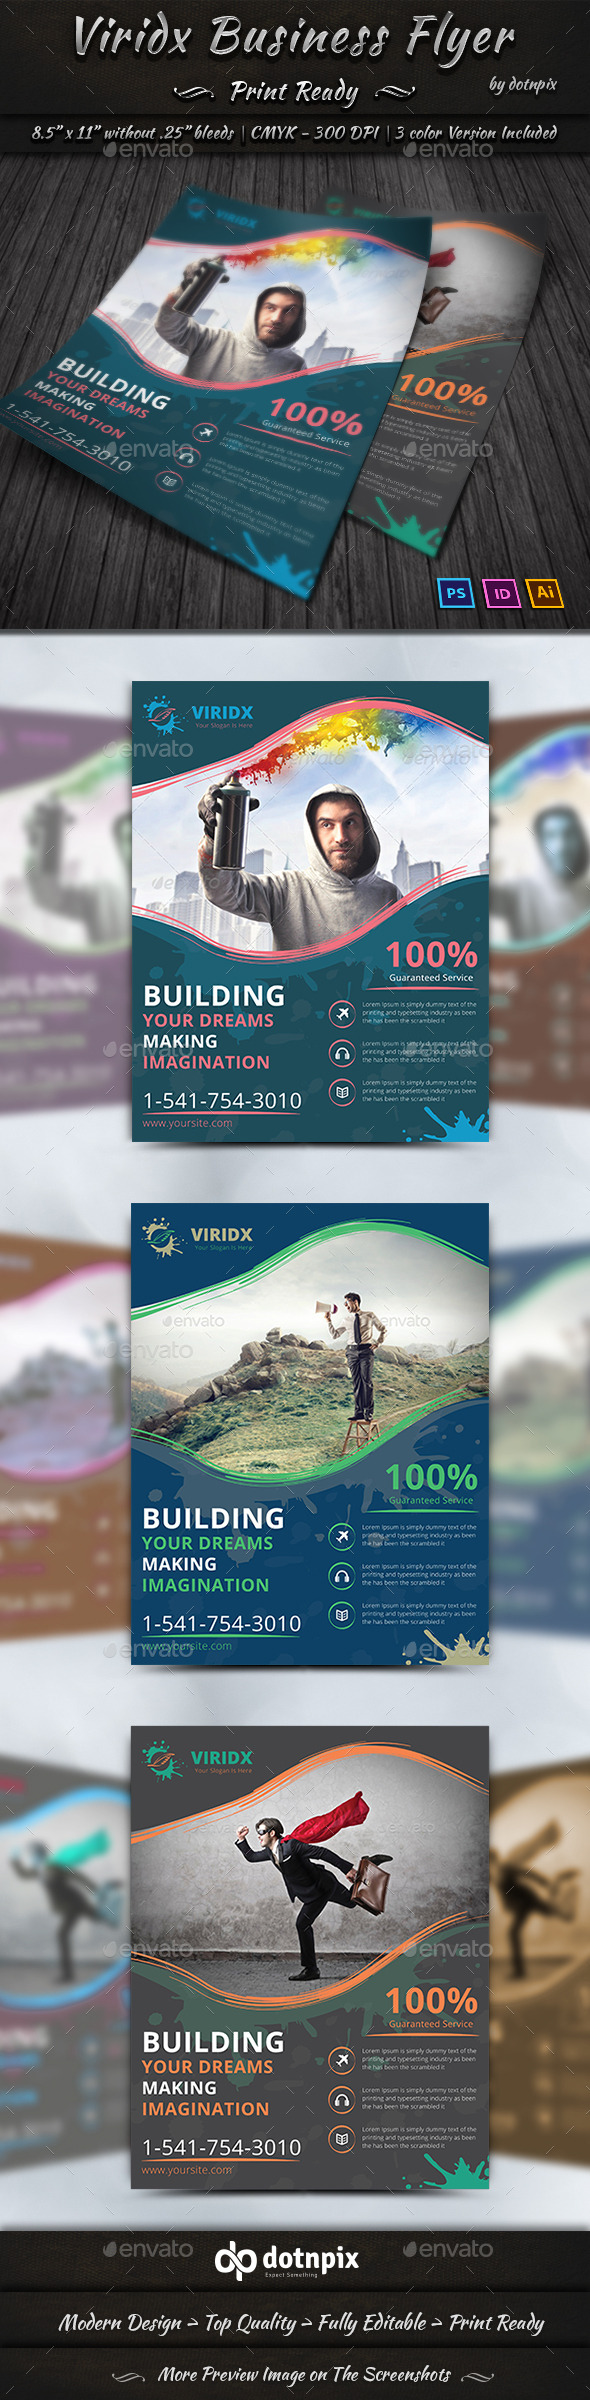 Viridx Business Flyer